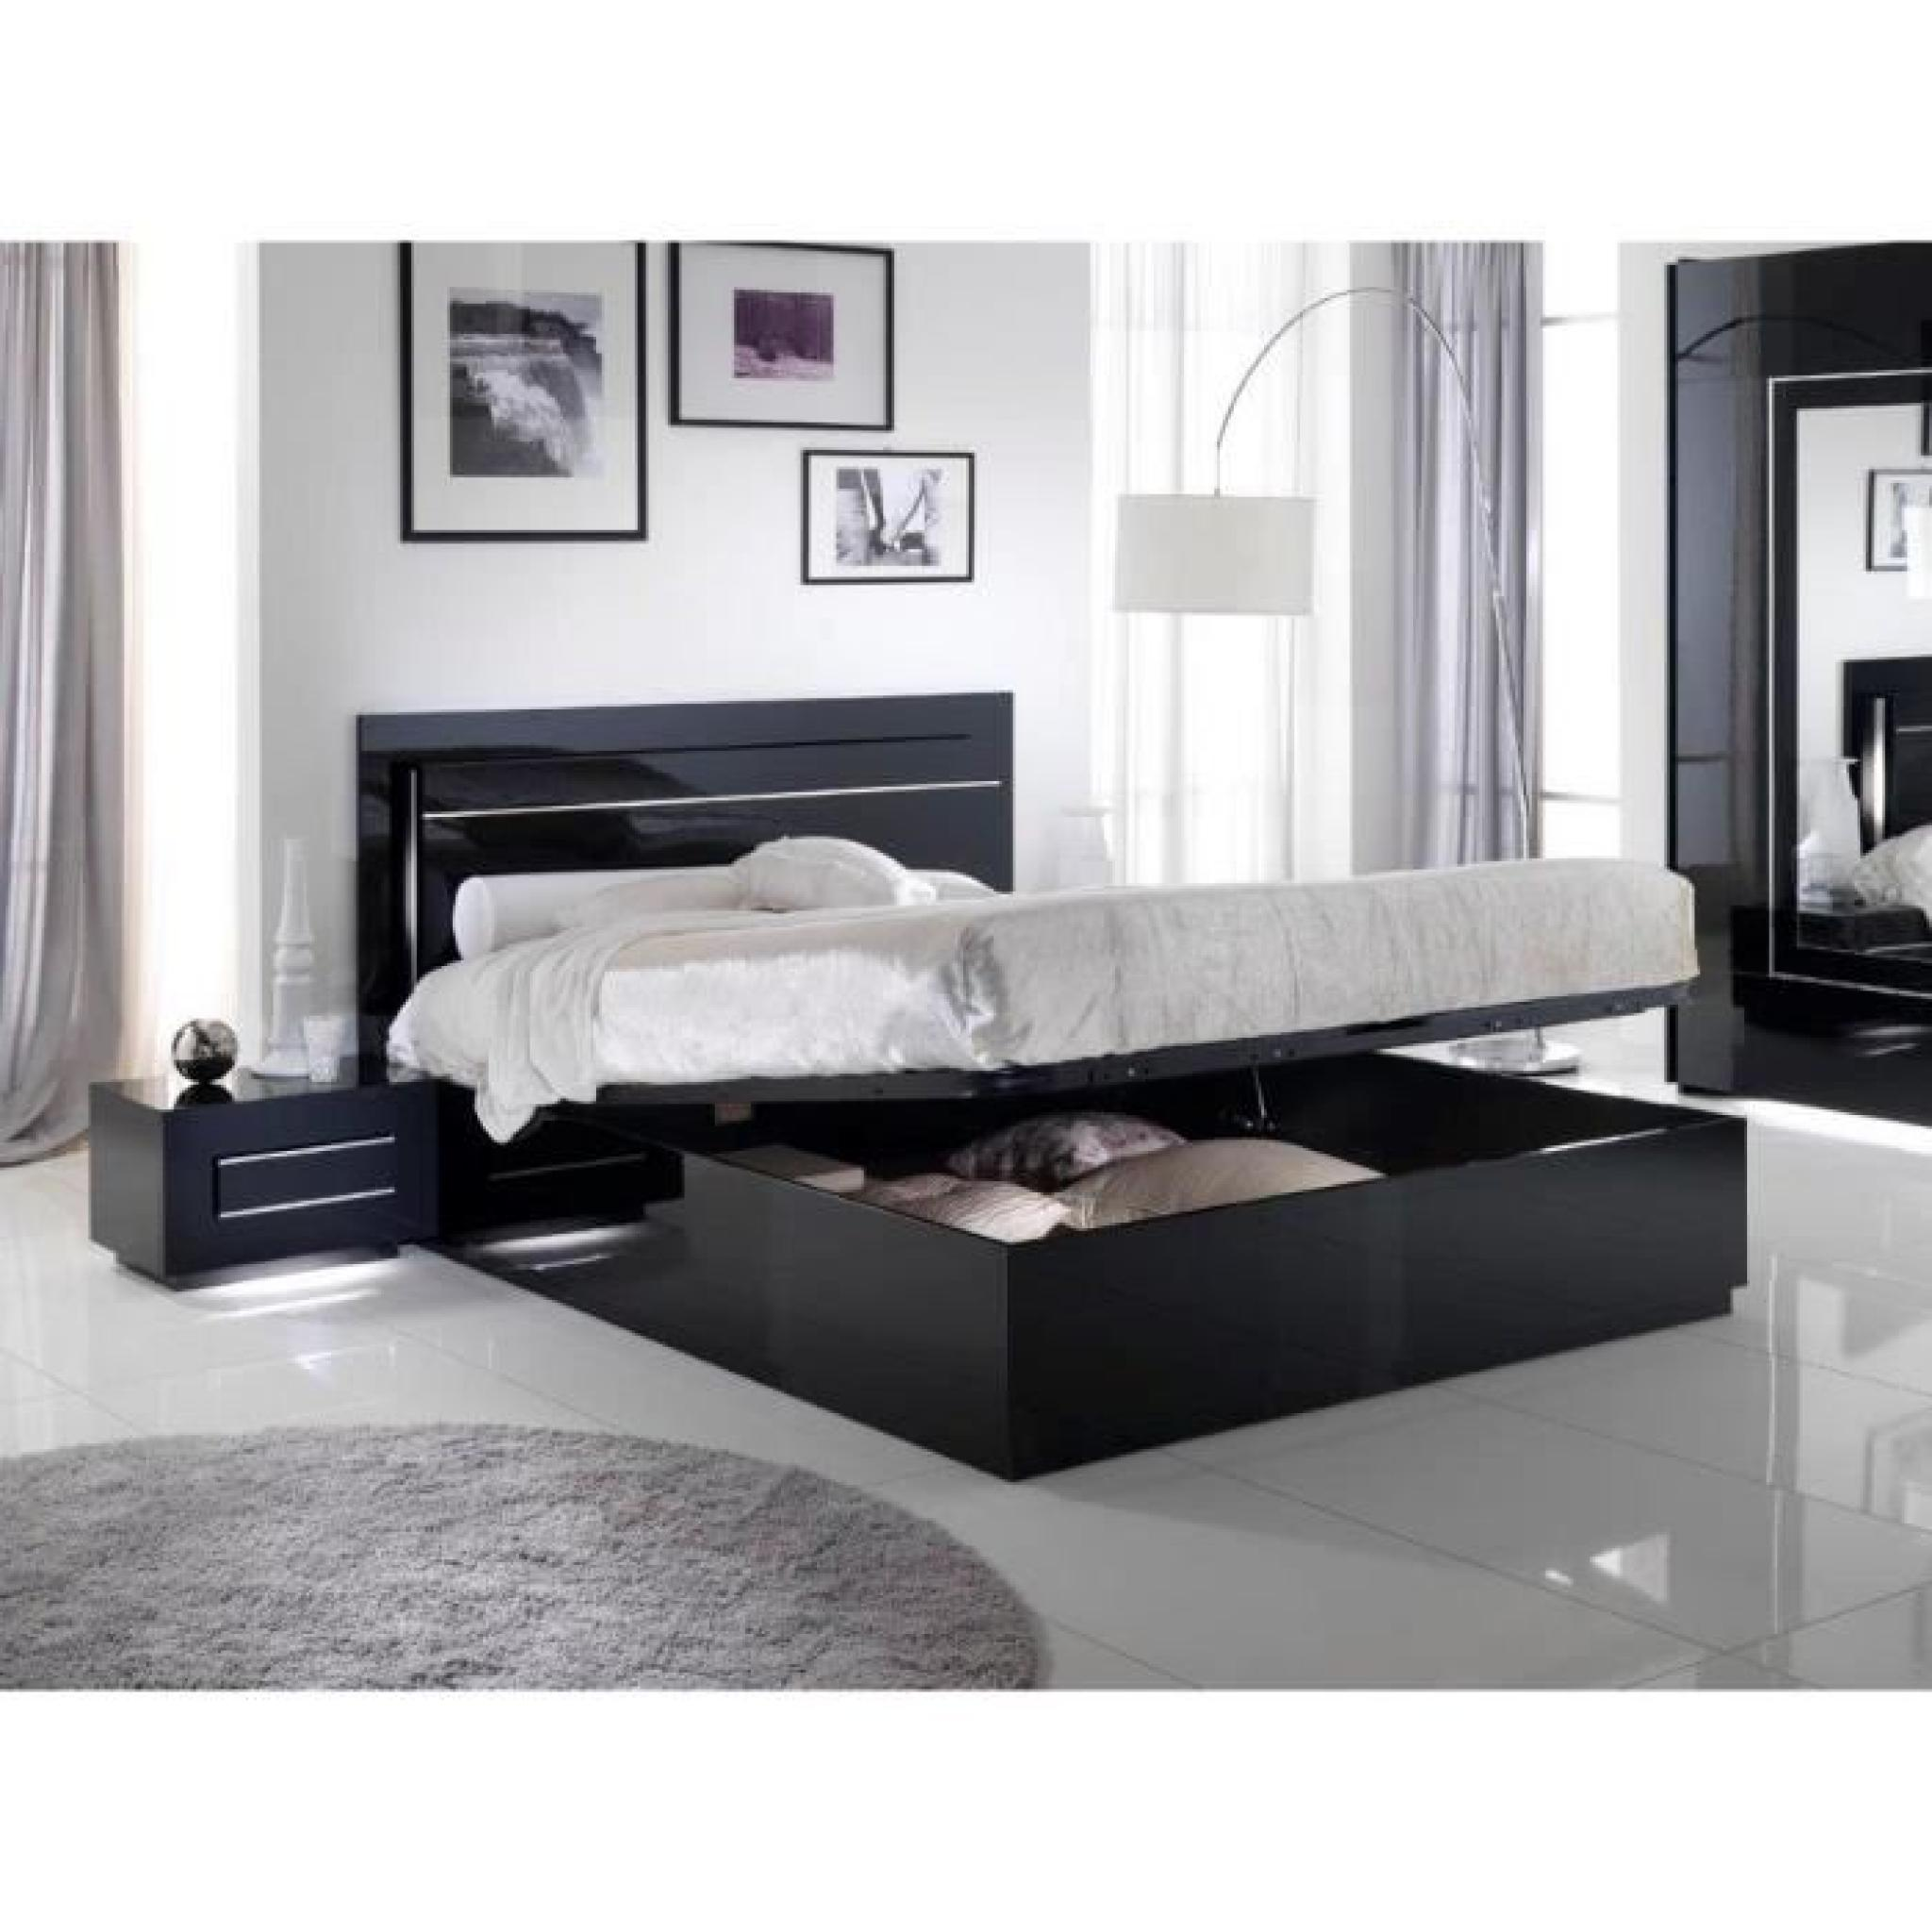 Beautiful model lit de chambre contemporary home ideas for Chambre a coucher design